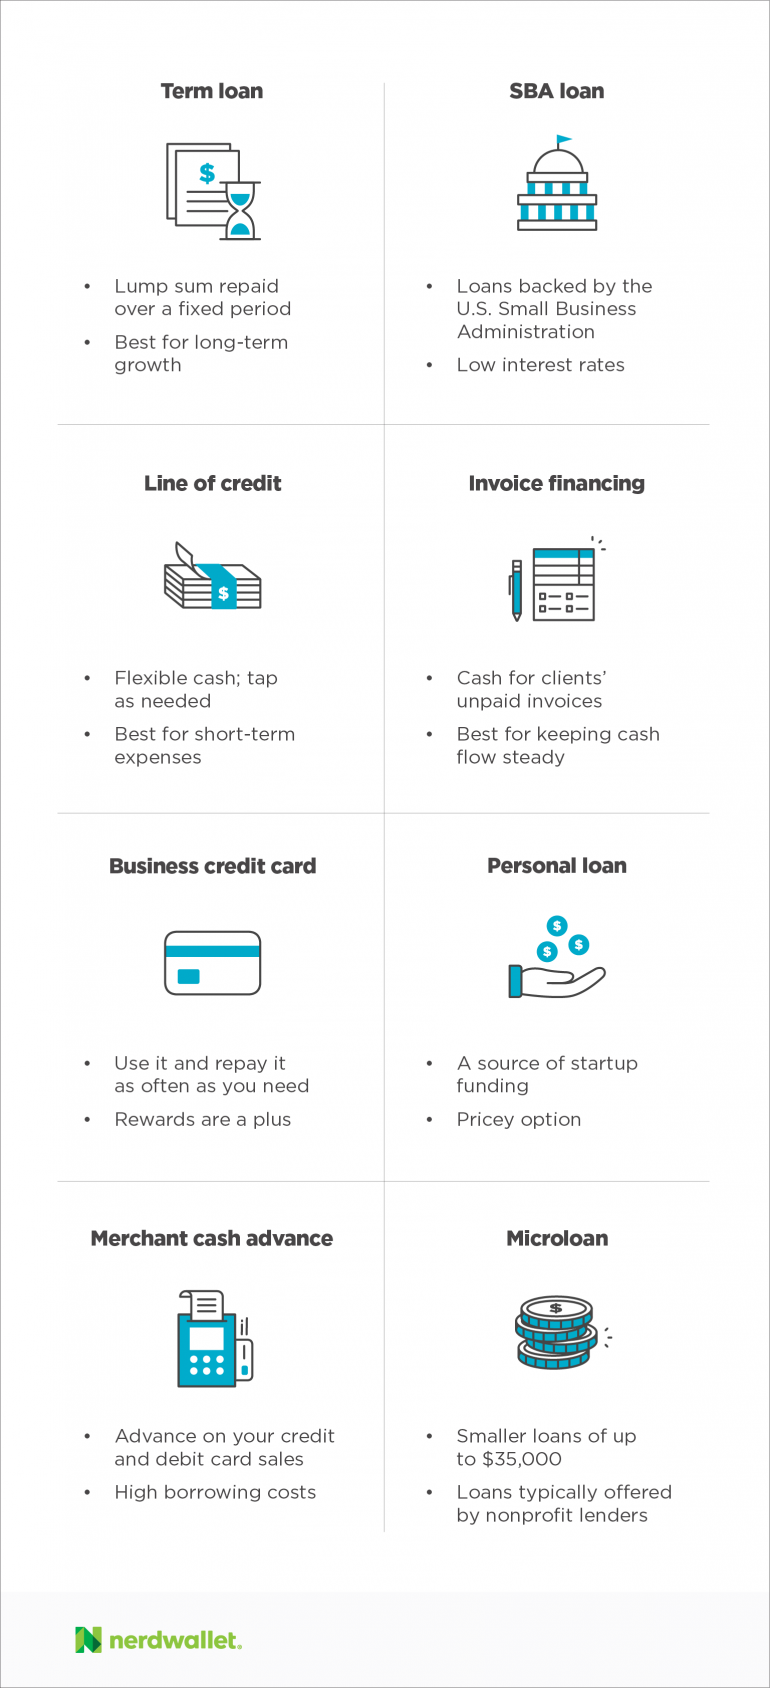 How to get a small business loan in 5 steps nerdwallet small business financing in simple terms reheart Image collections